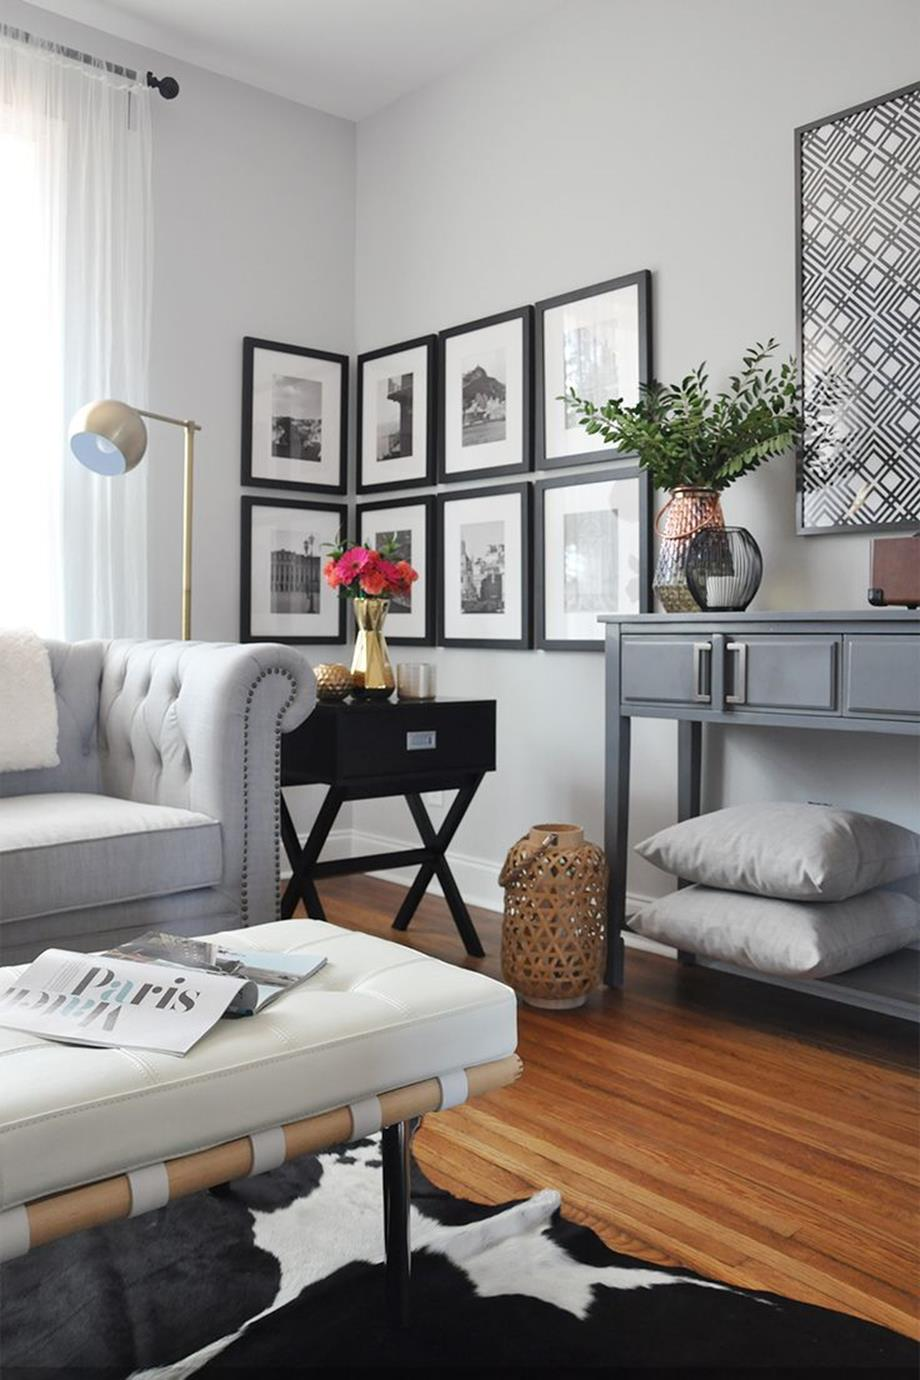 City Chic Living Room Decorating Ideas On a Budget 5